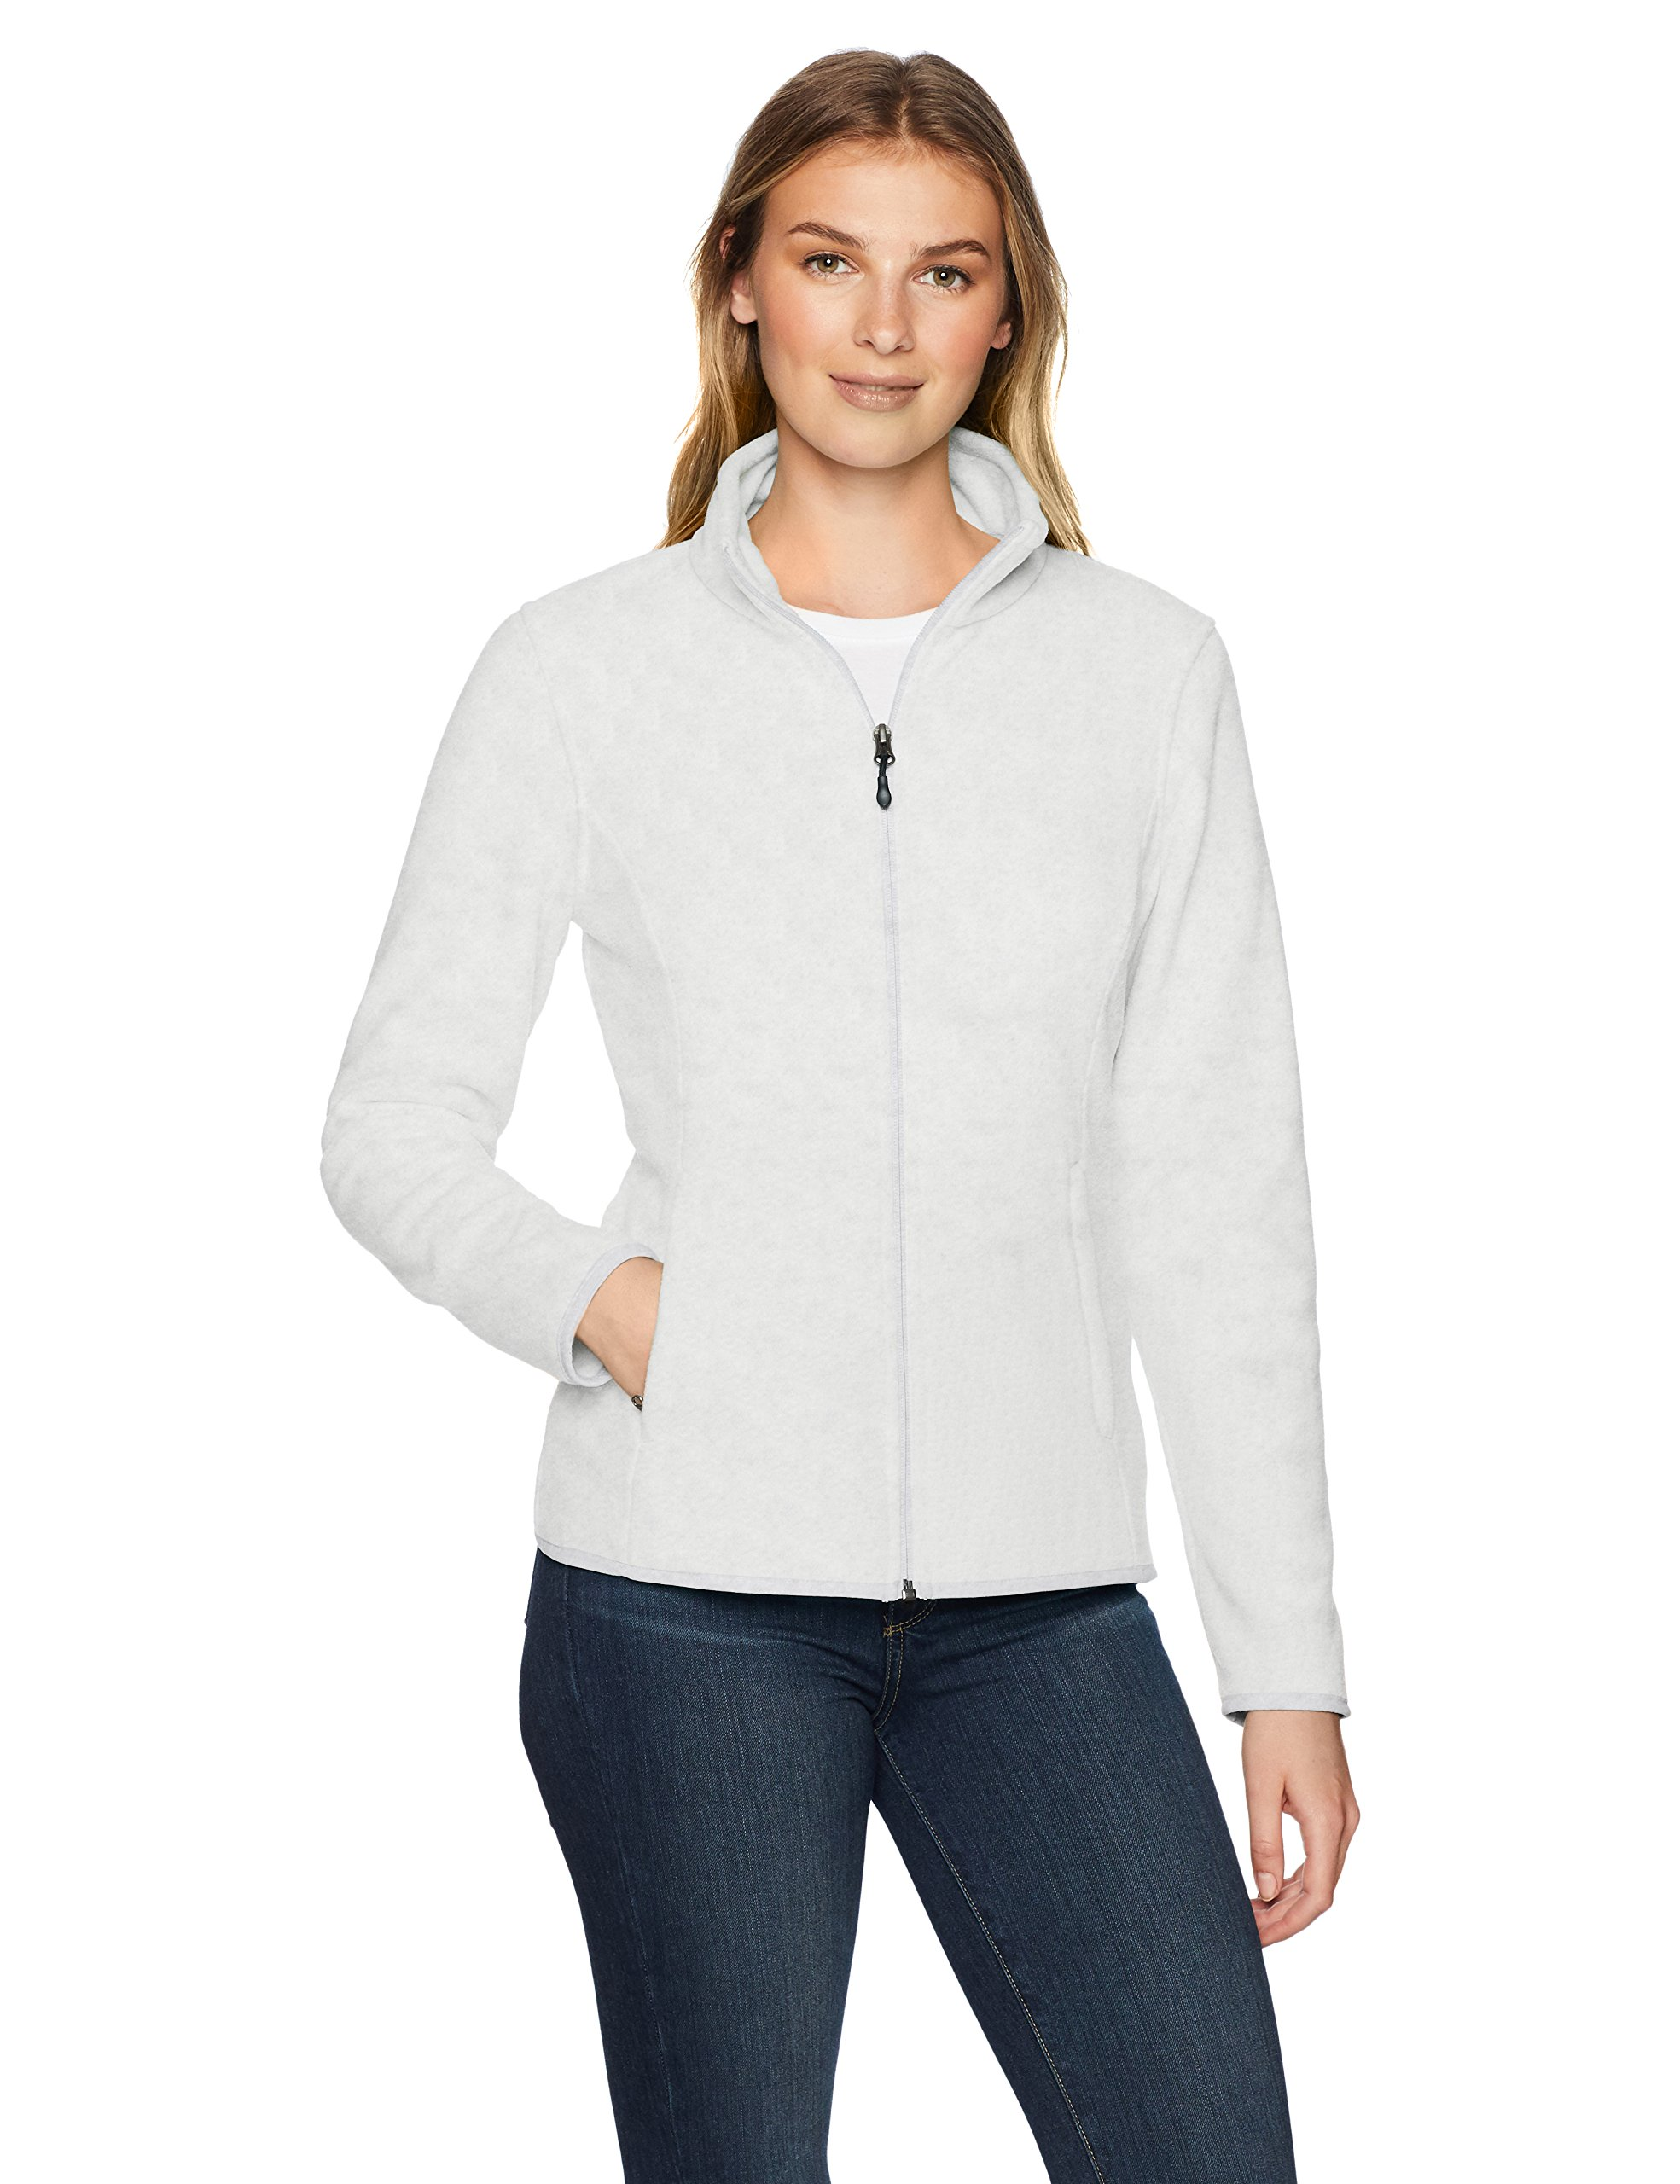 Amazon Essentials Women's Standard Full-Zip Polar Fleece Jacket, Light Grey Heather, Small